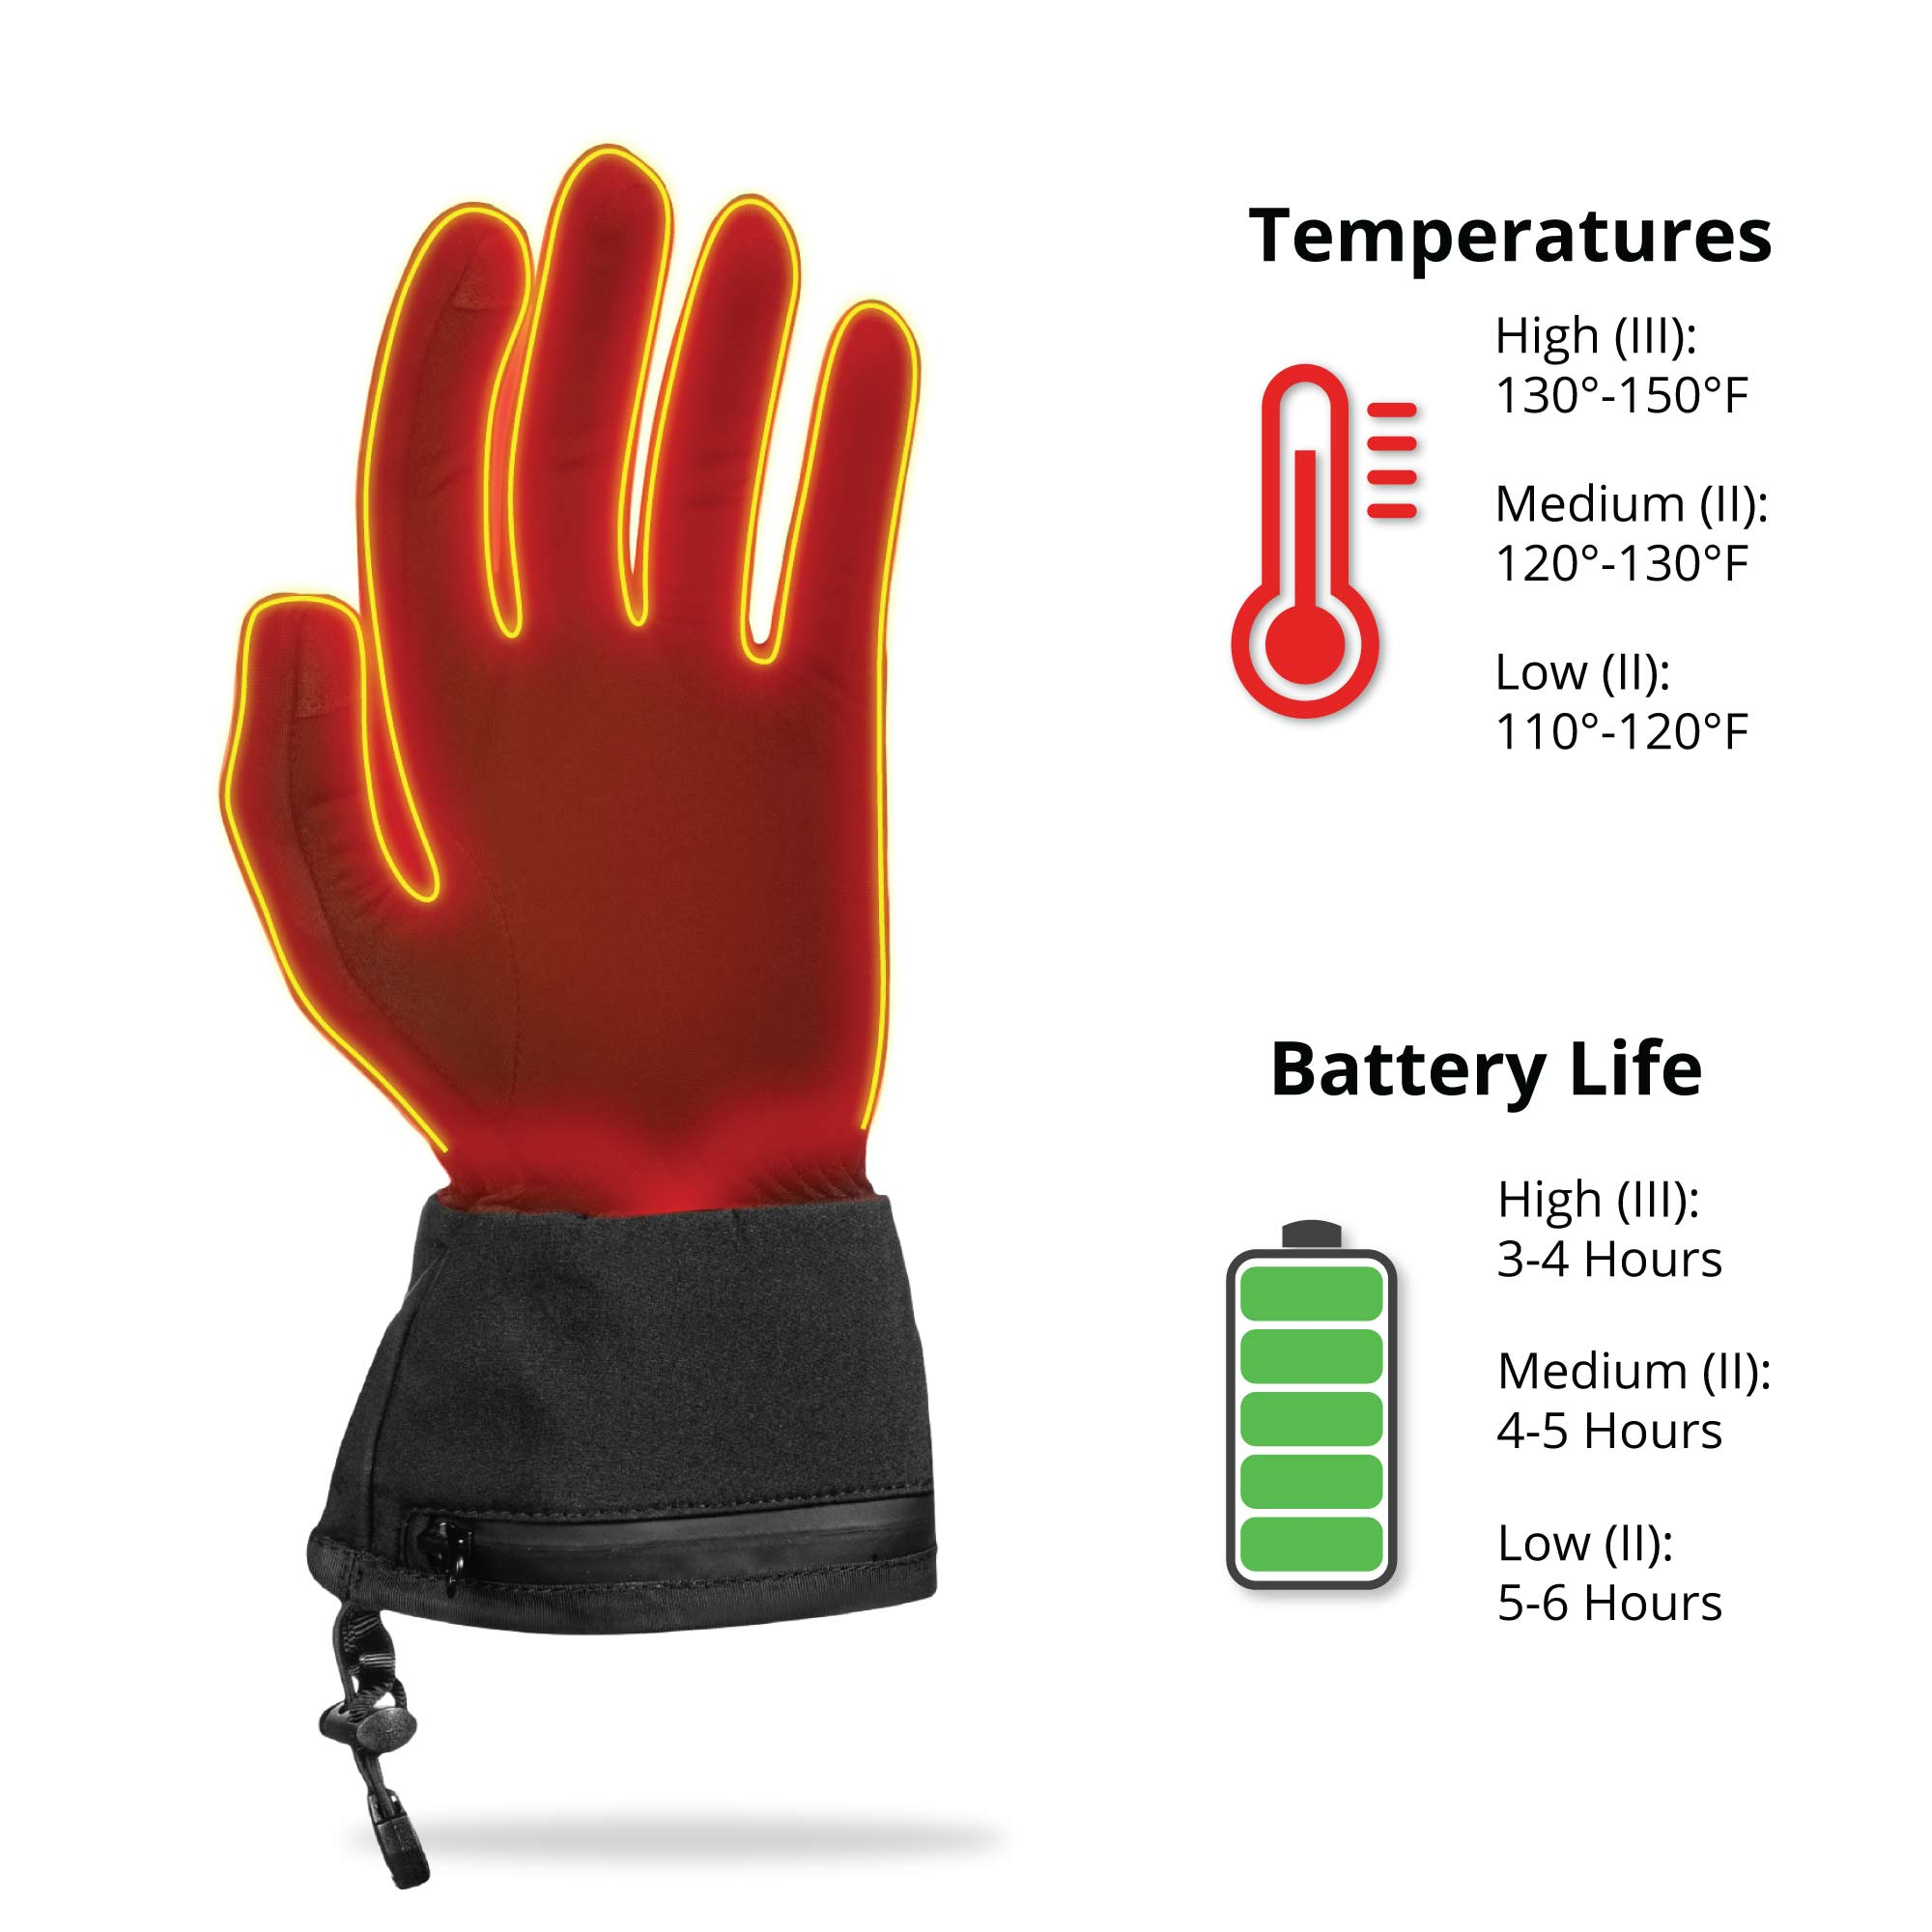 the all new heated glove by anseris heated clothing features heating elements that wrap around your entire hand with a focus on keeping your fingers warm.  easily adjust the temperature with 3 heat settings that reach temperatures up to 130 degrees